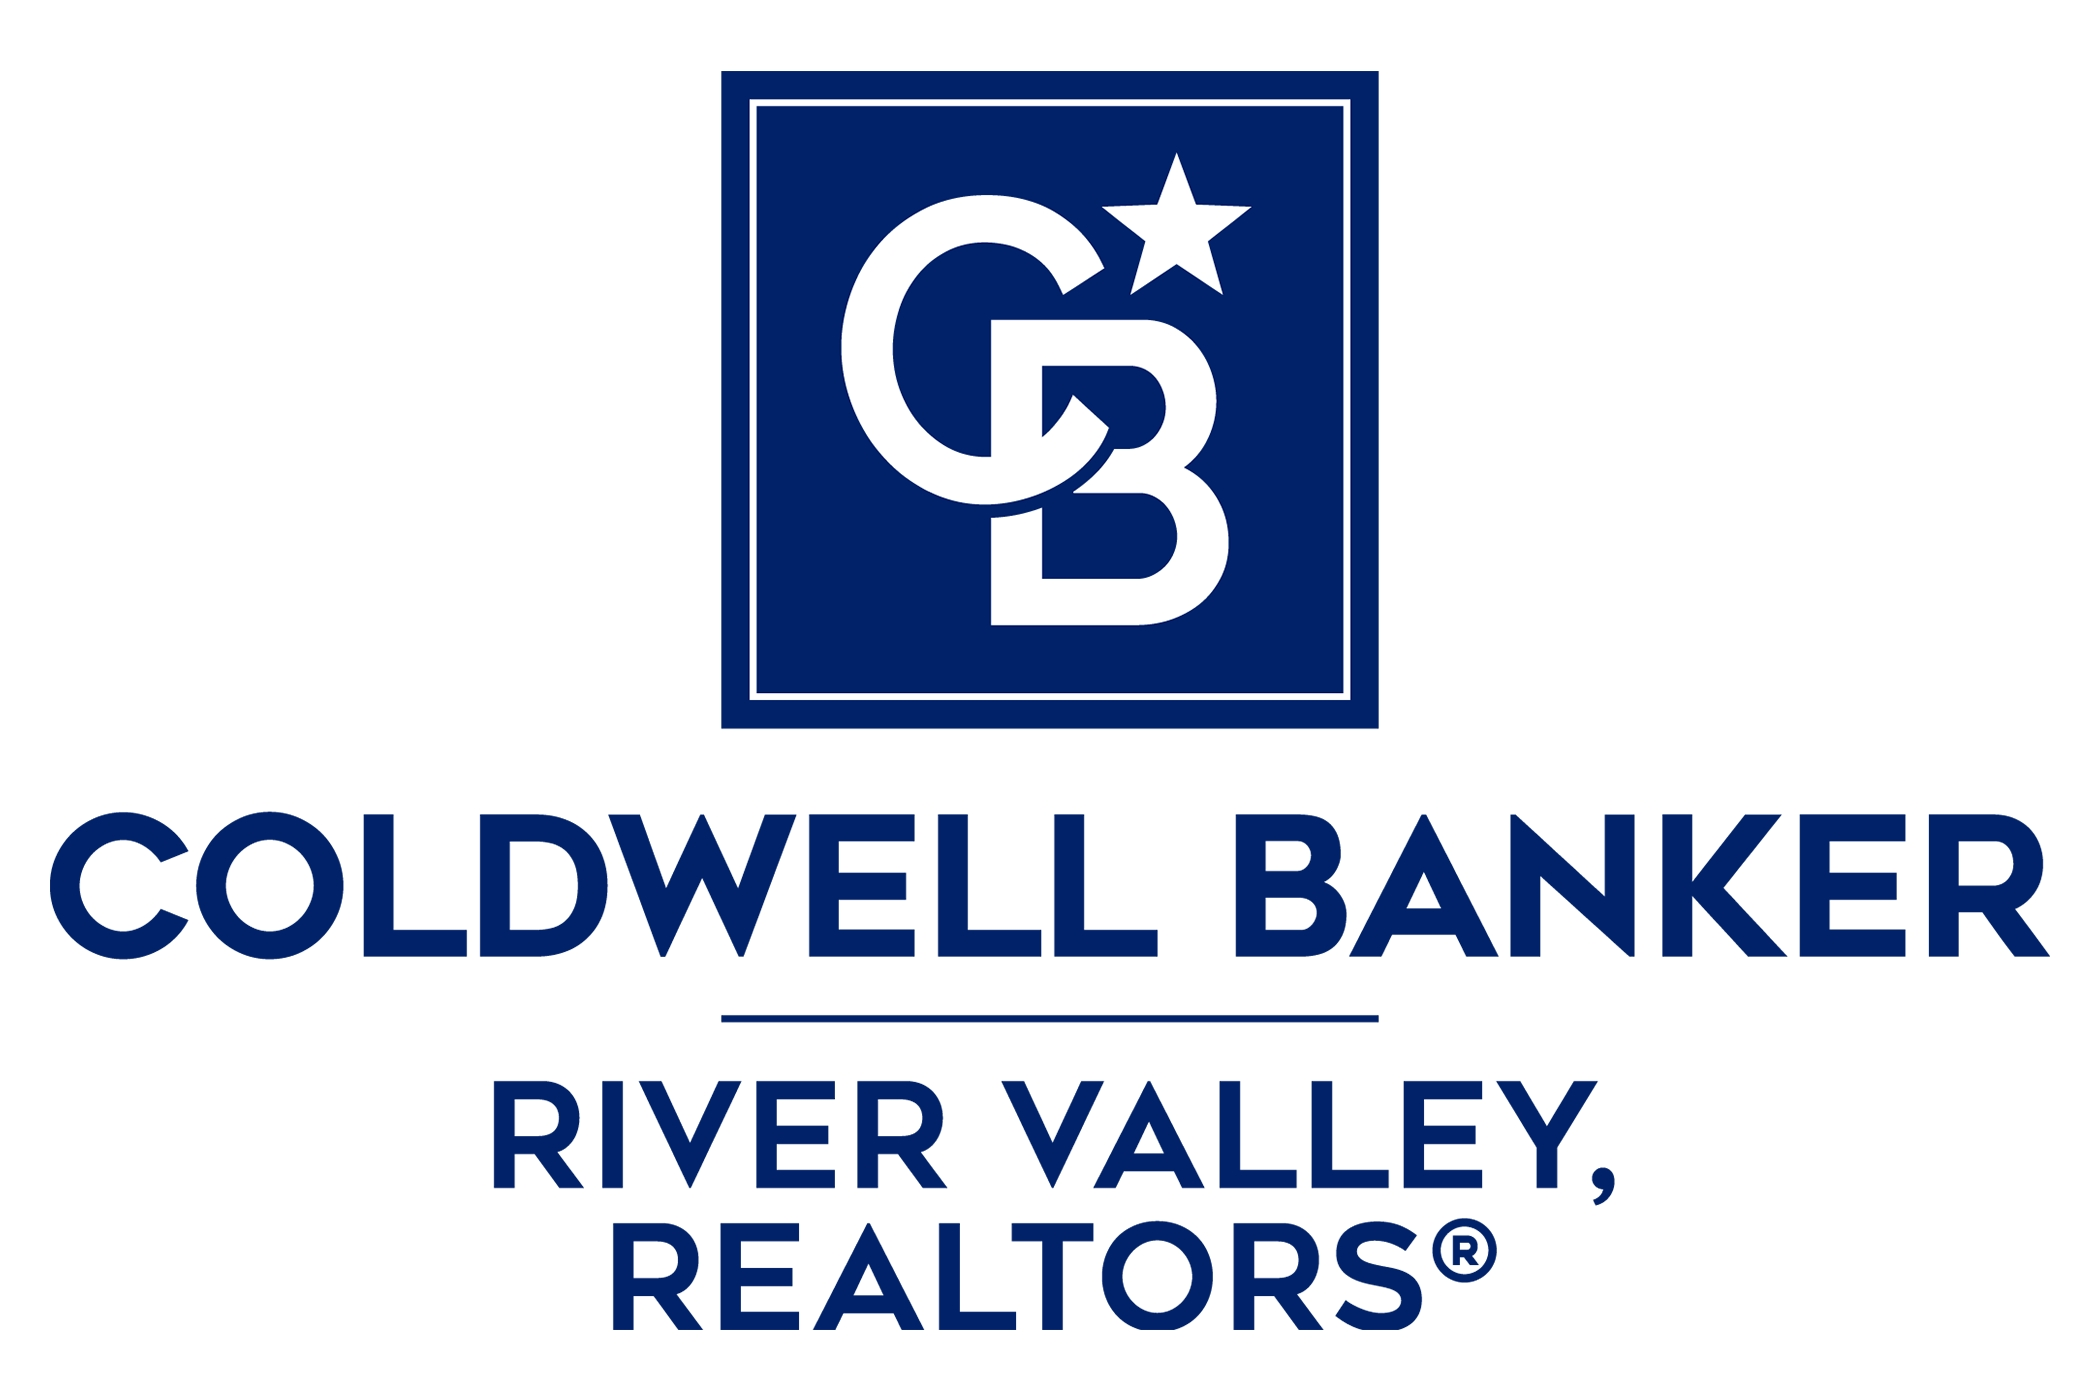 Marilyn Reinart - Coldwell Banker River Valley, REALTORS